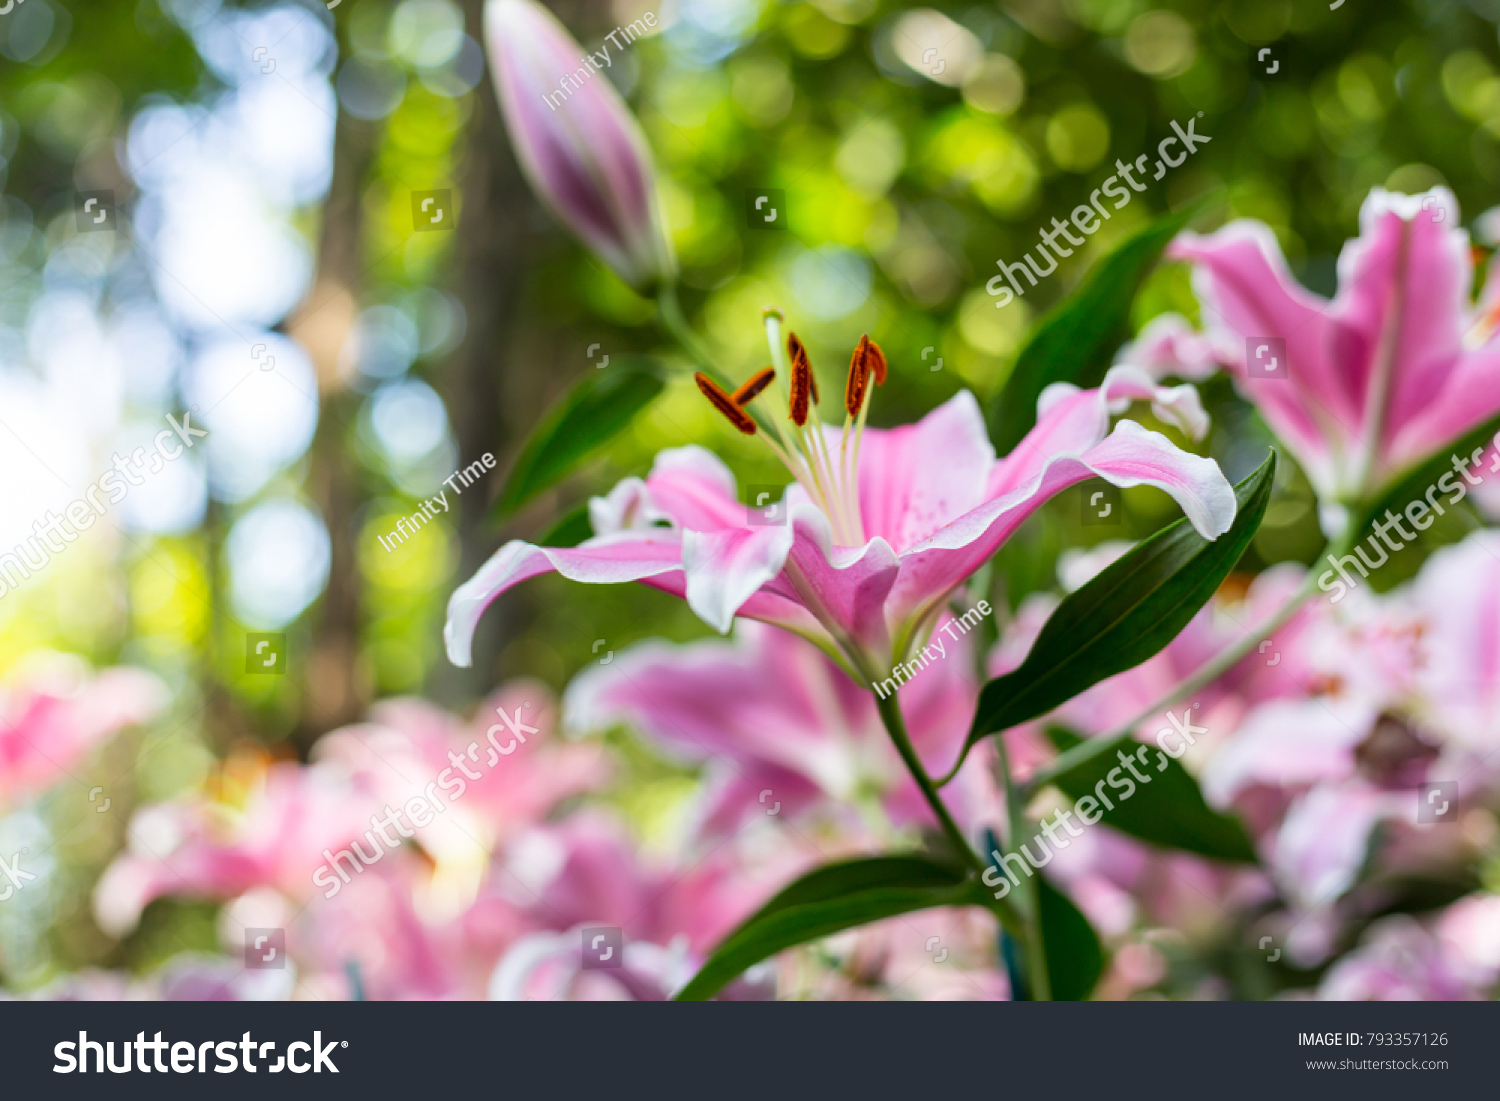 Zephyranthes Flower Common Names Species This Stock Photo (Edit Now